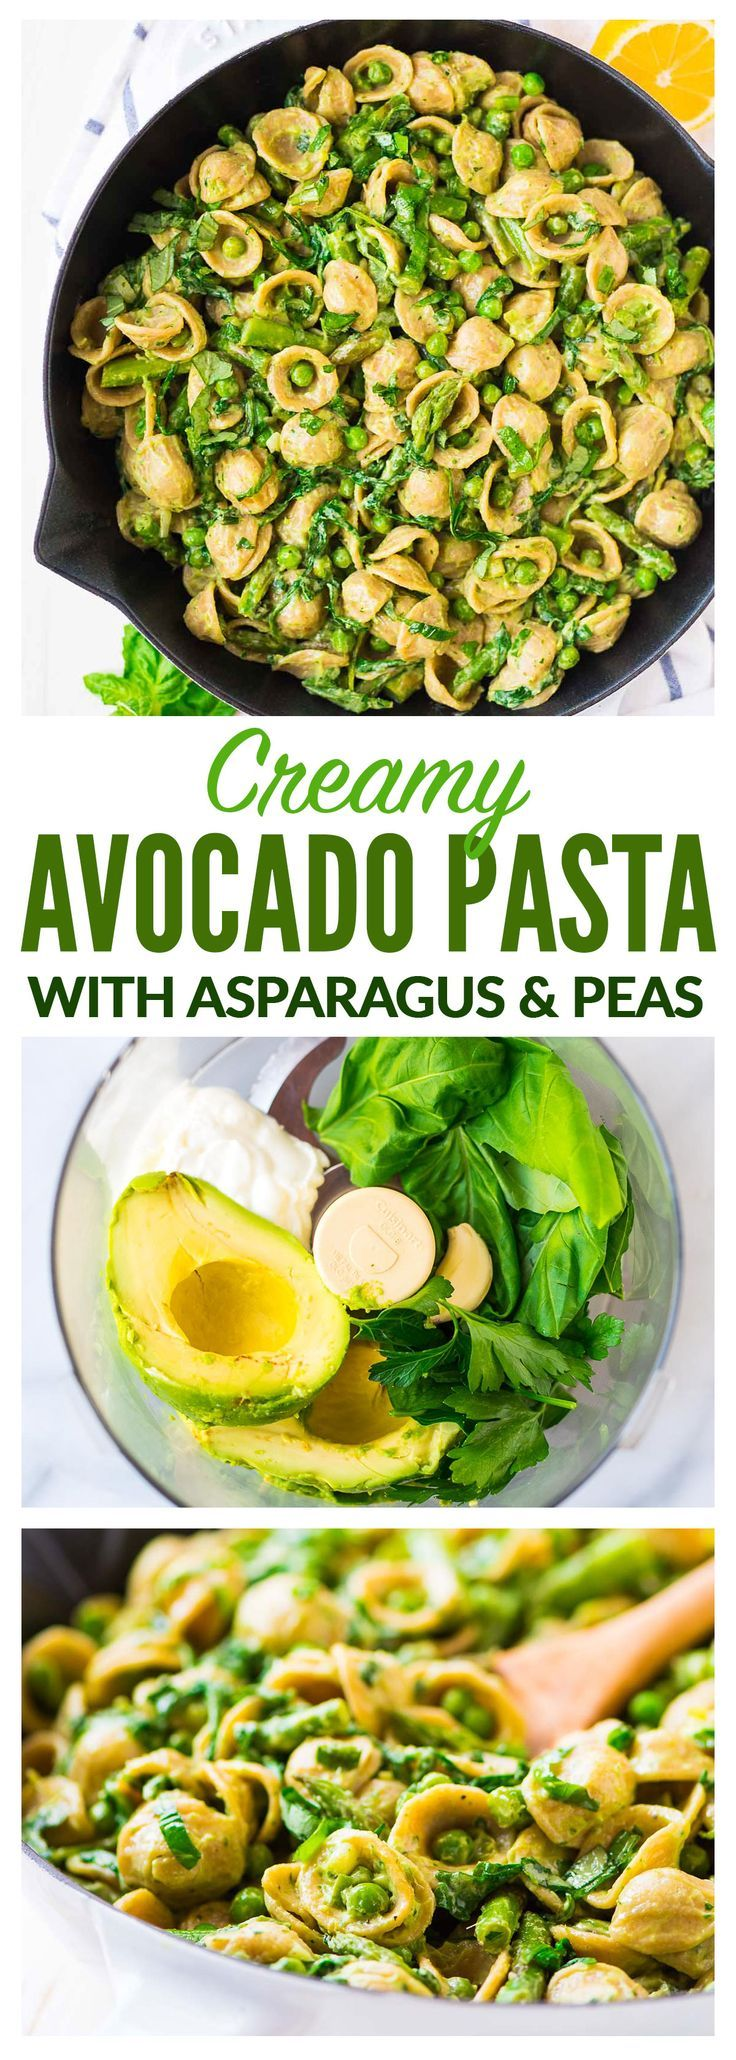 Avocado Pasta — Greek yogurt and avocado makes the CREAMIEST pasta sauce, no butter and no heavy cream required! Add asparagus, peas, spinach or any other vegetable or even chicken. Easy and healthy. Recipe at wellplated.com | @wellplated